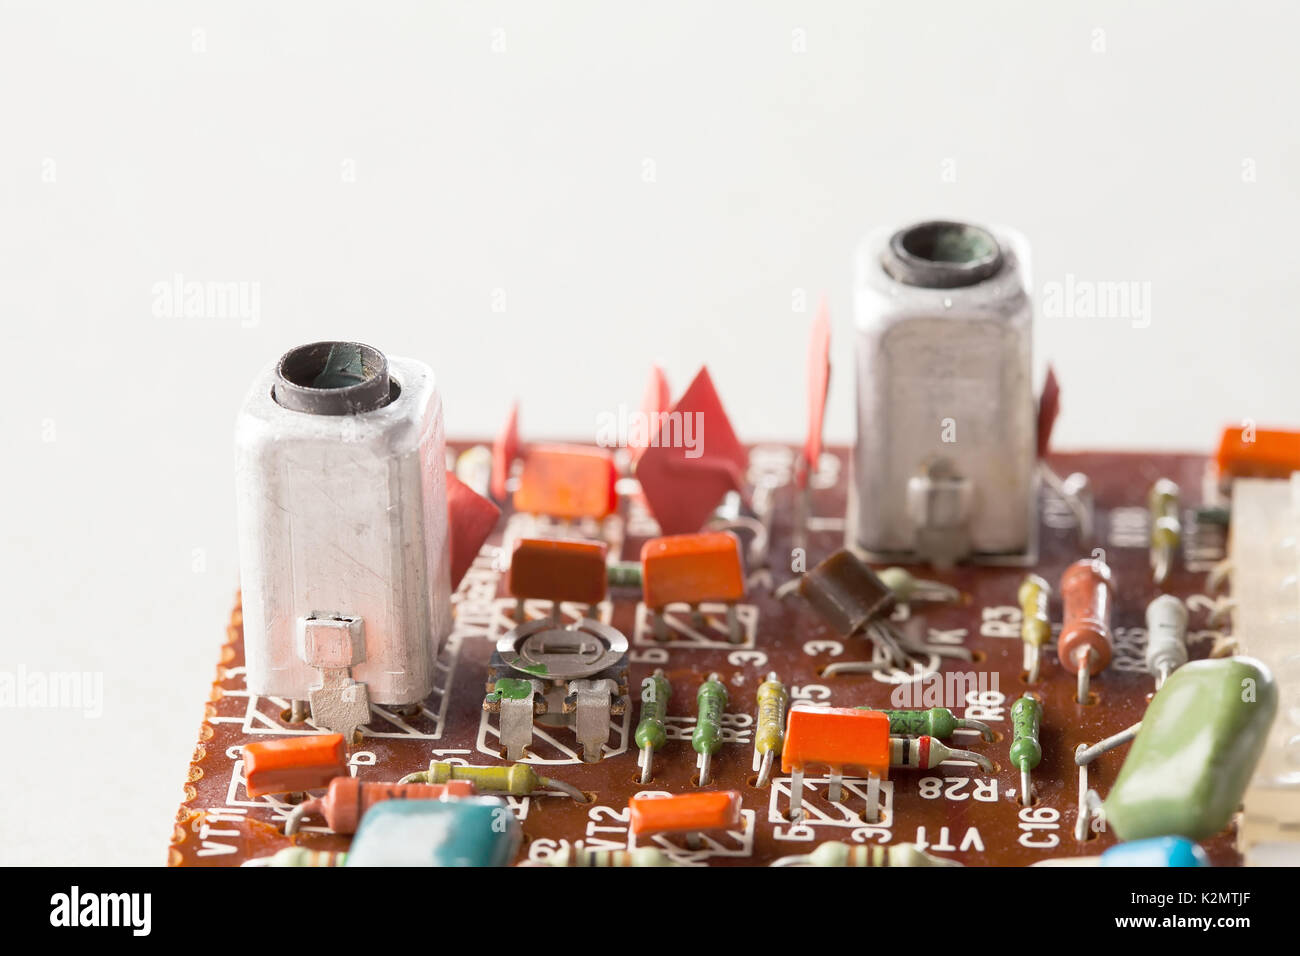 Circuit Board Soldering Resistors Stock Photos Old Electronics Royalty Free Photo Image Capacitors Close Up Selective Focus Vintage Design And Colorful